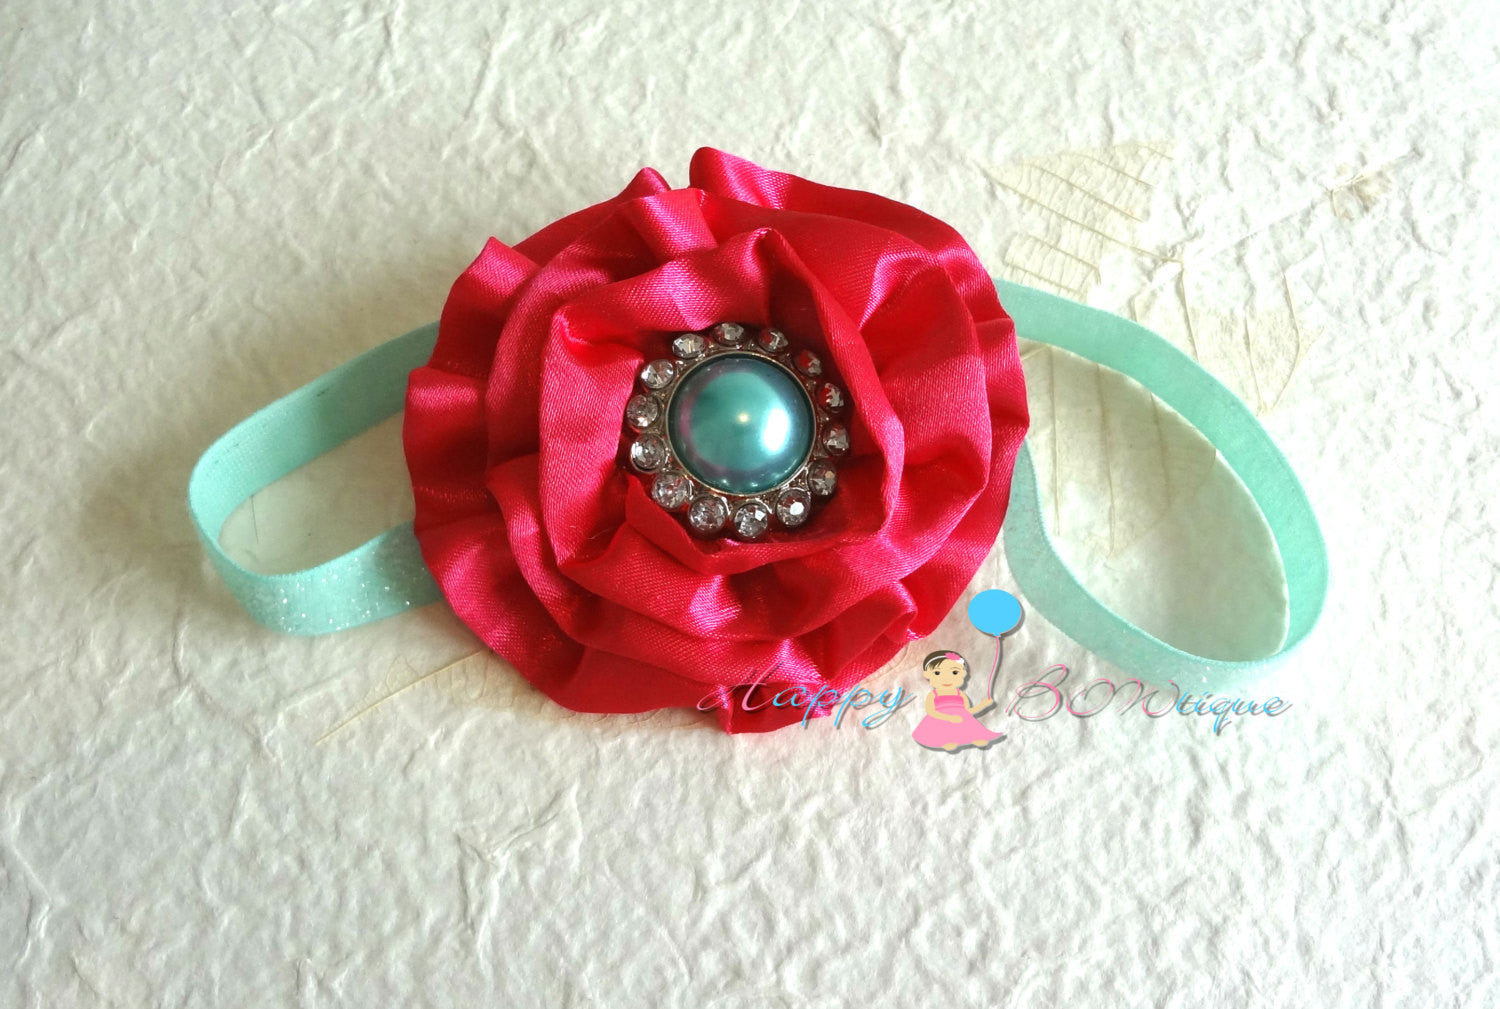 Hot Pink Satin Cabbage and Aqua headband - Happy BOWtique - children's clothing, Baby Girl clothing